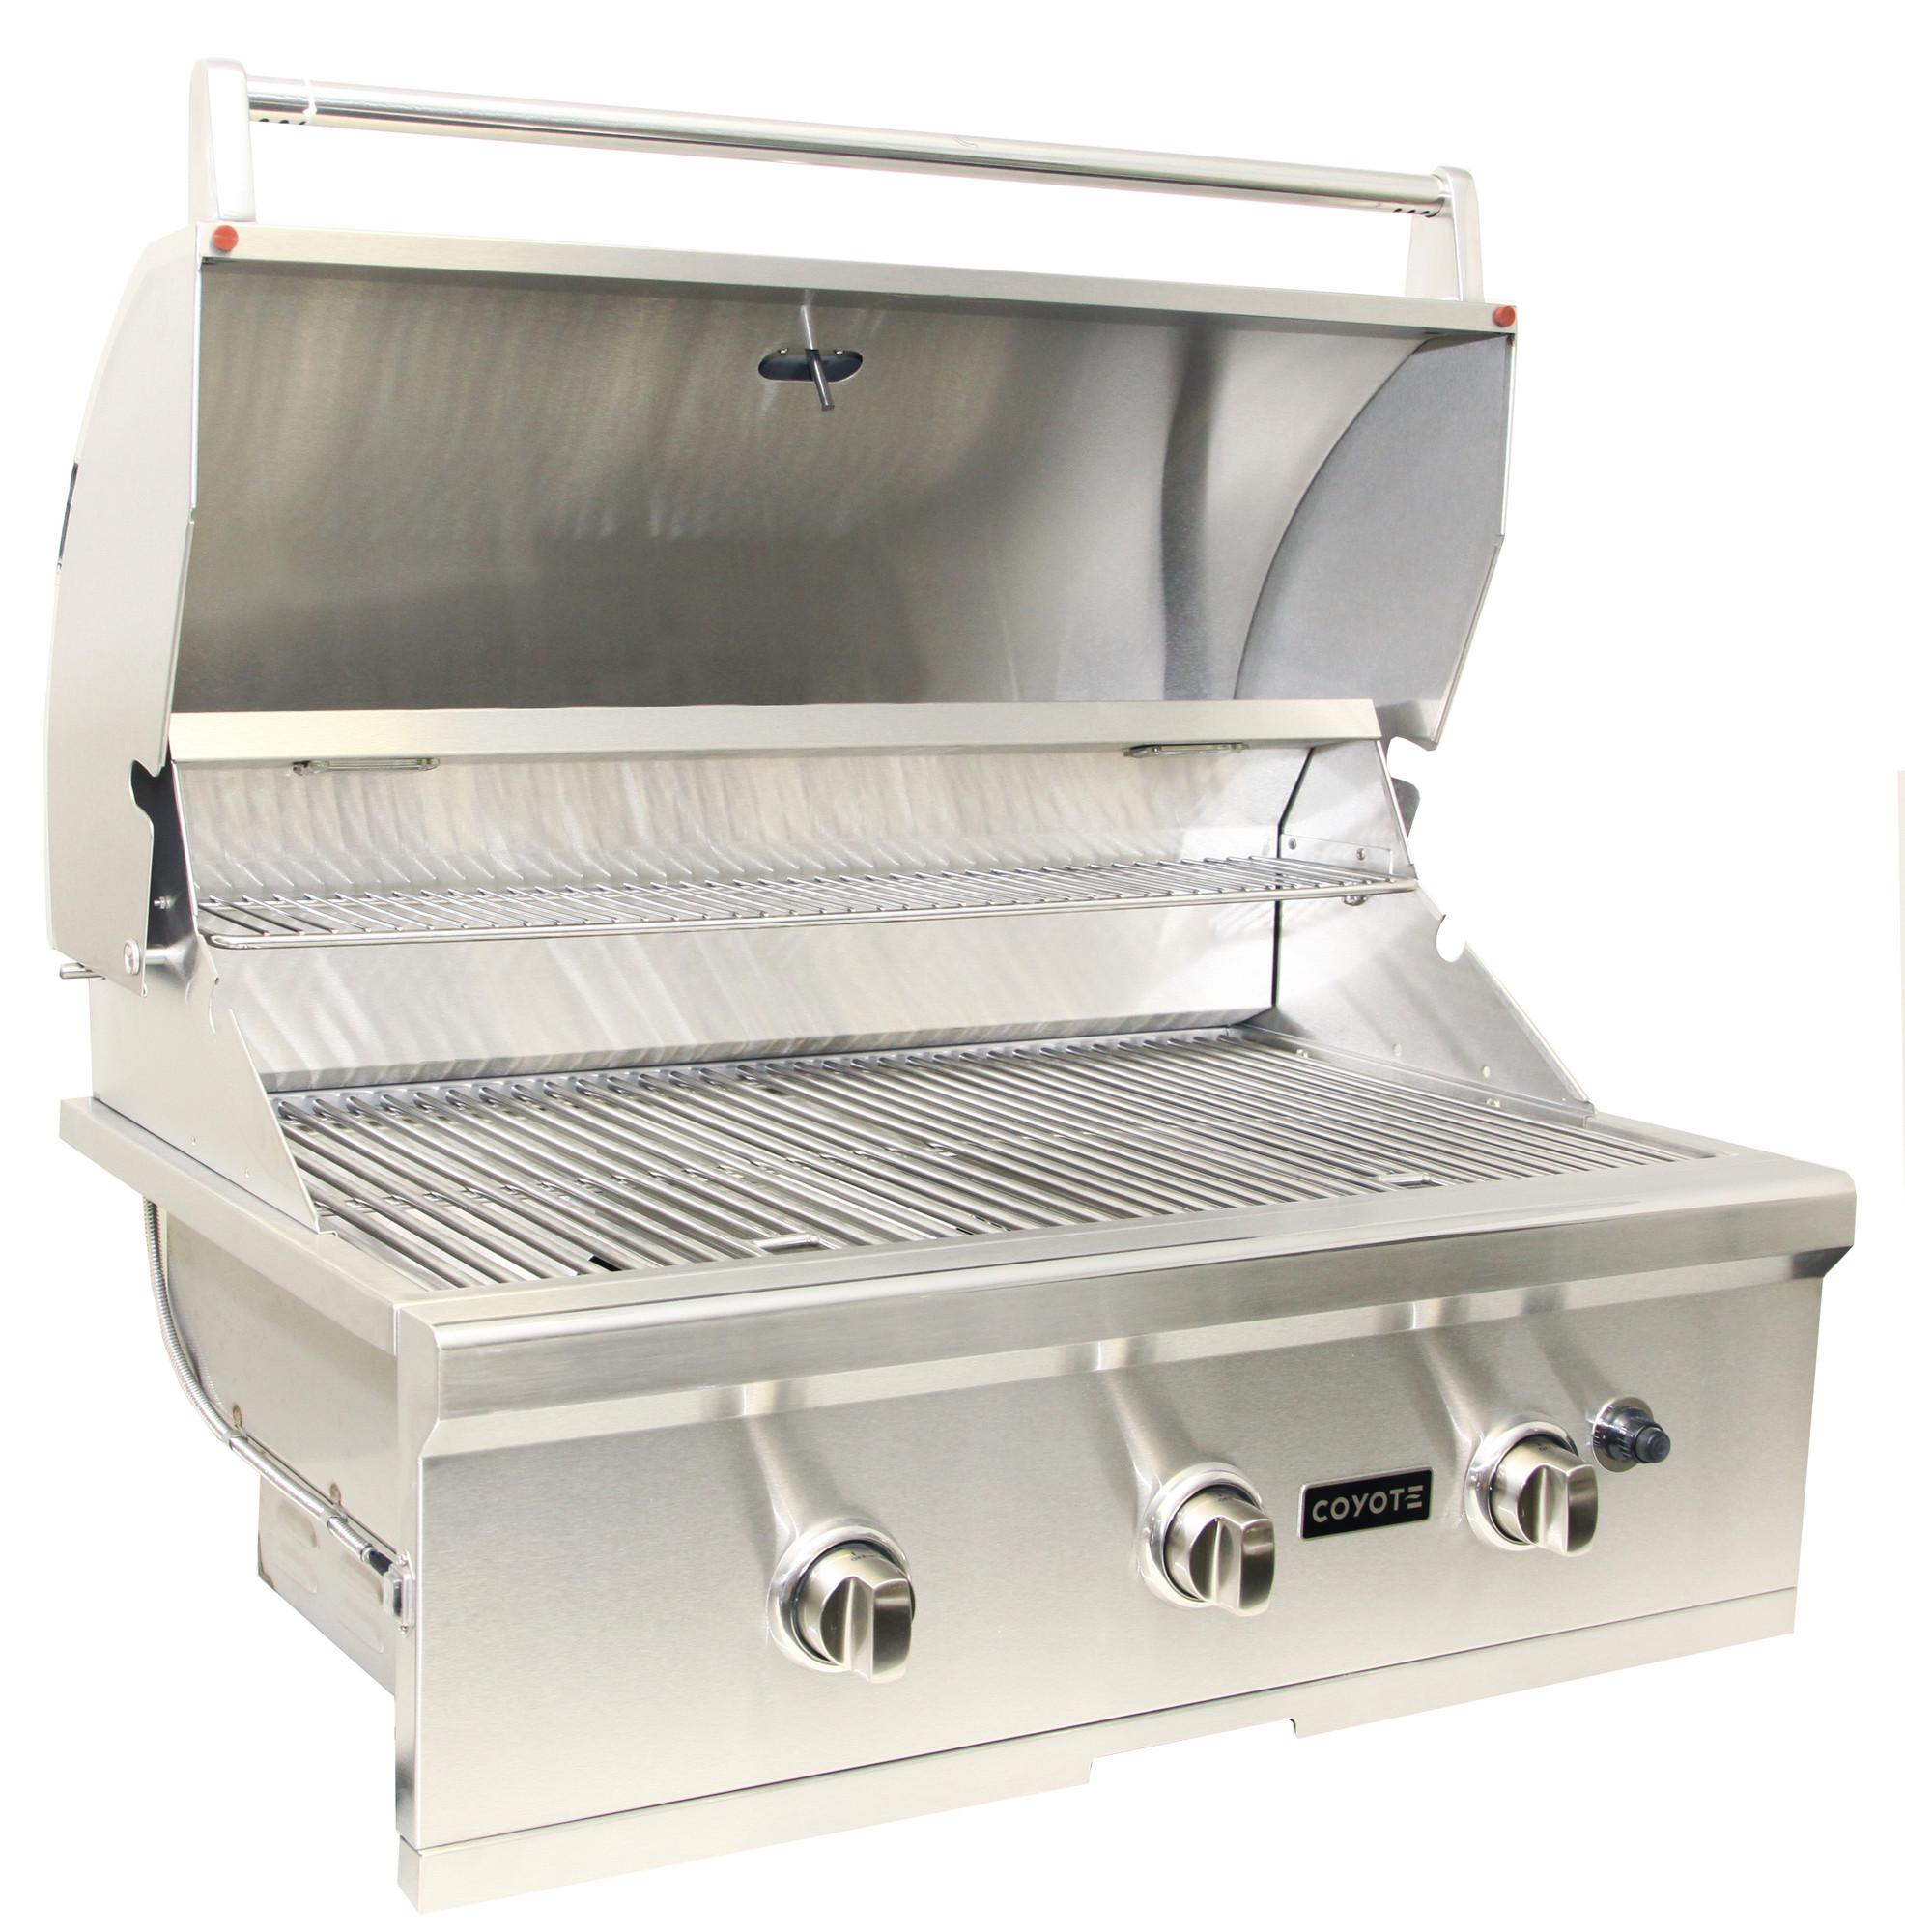 Cc3ng Coyote Cc3ng C Series Grills Natural Gas